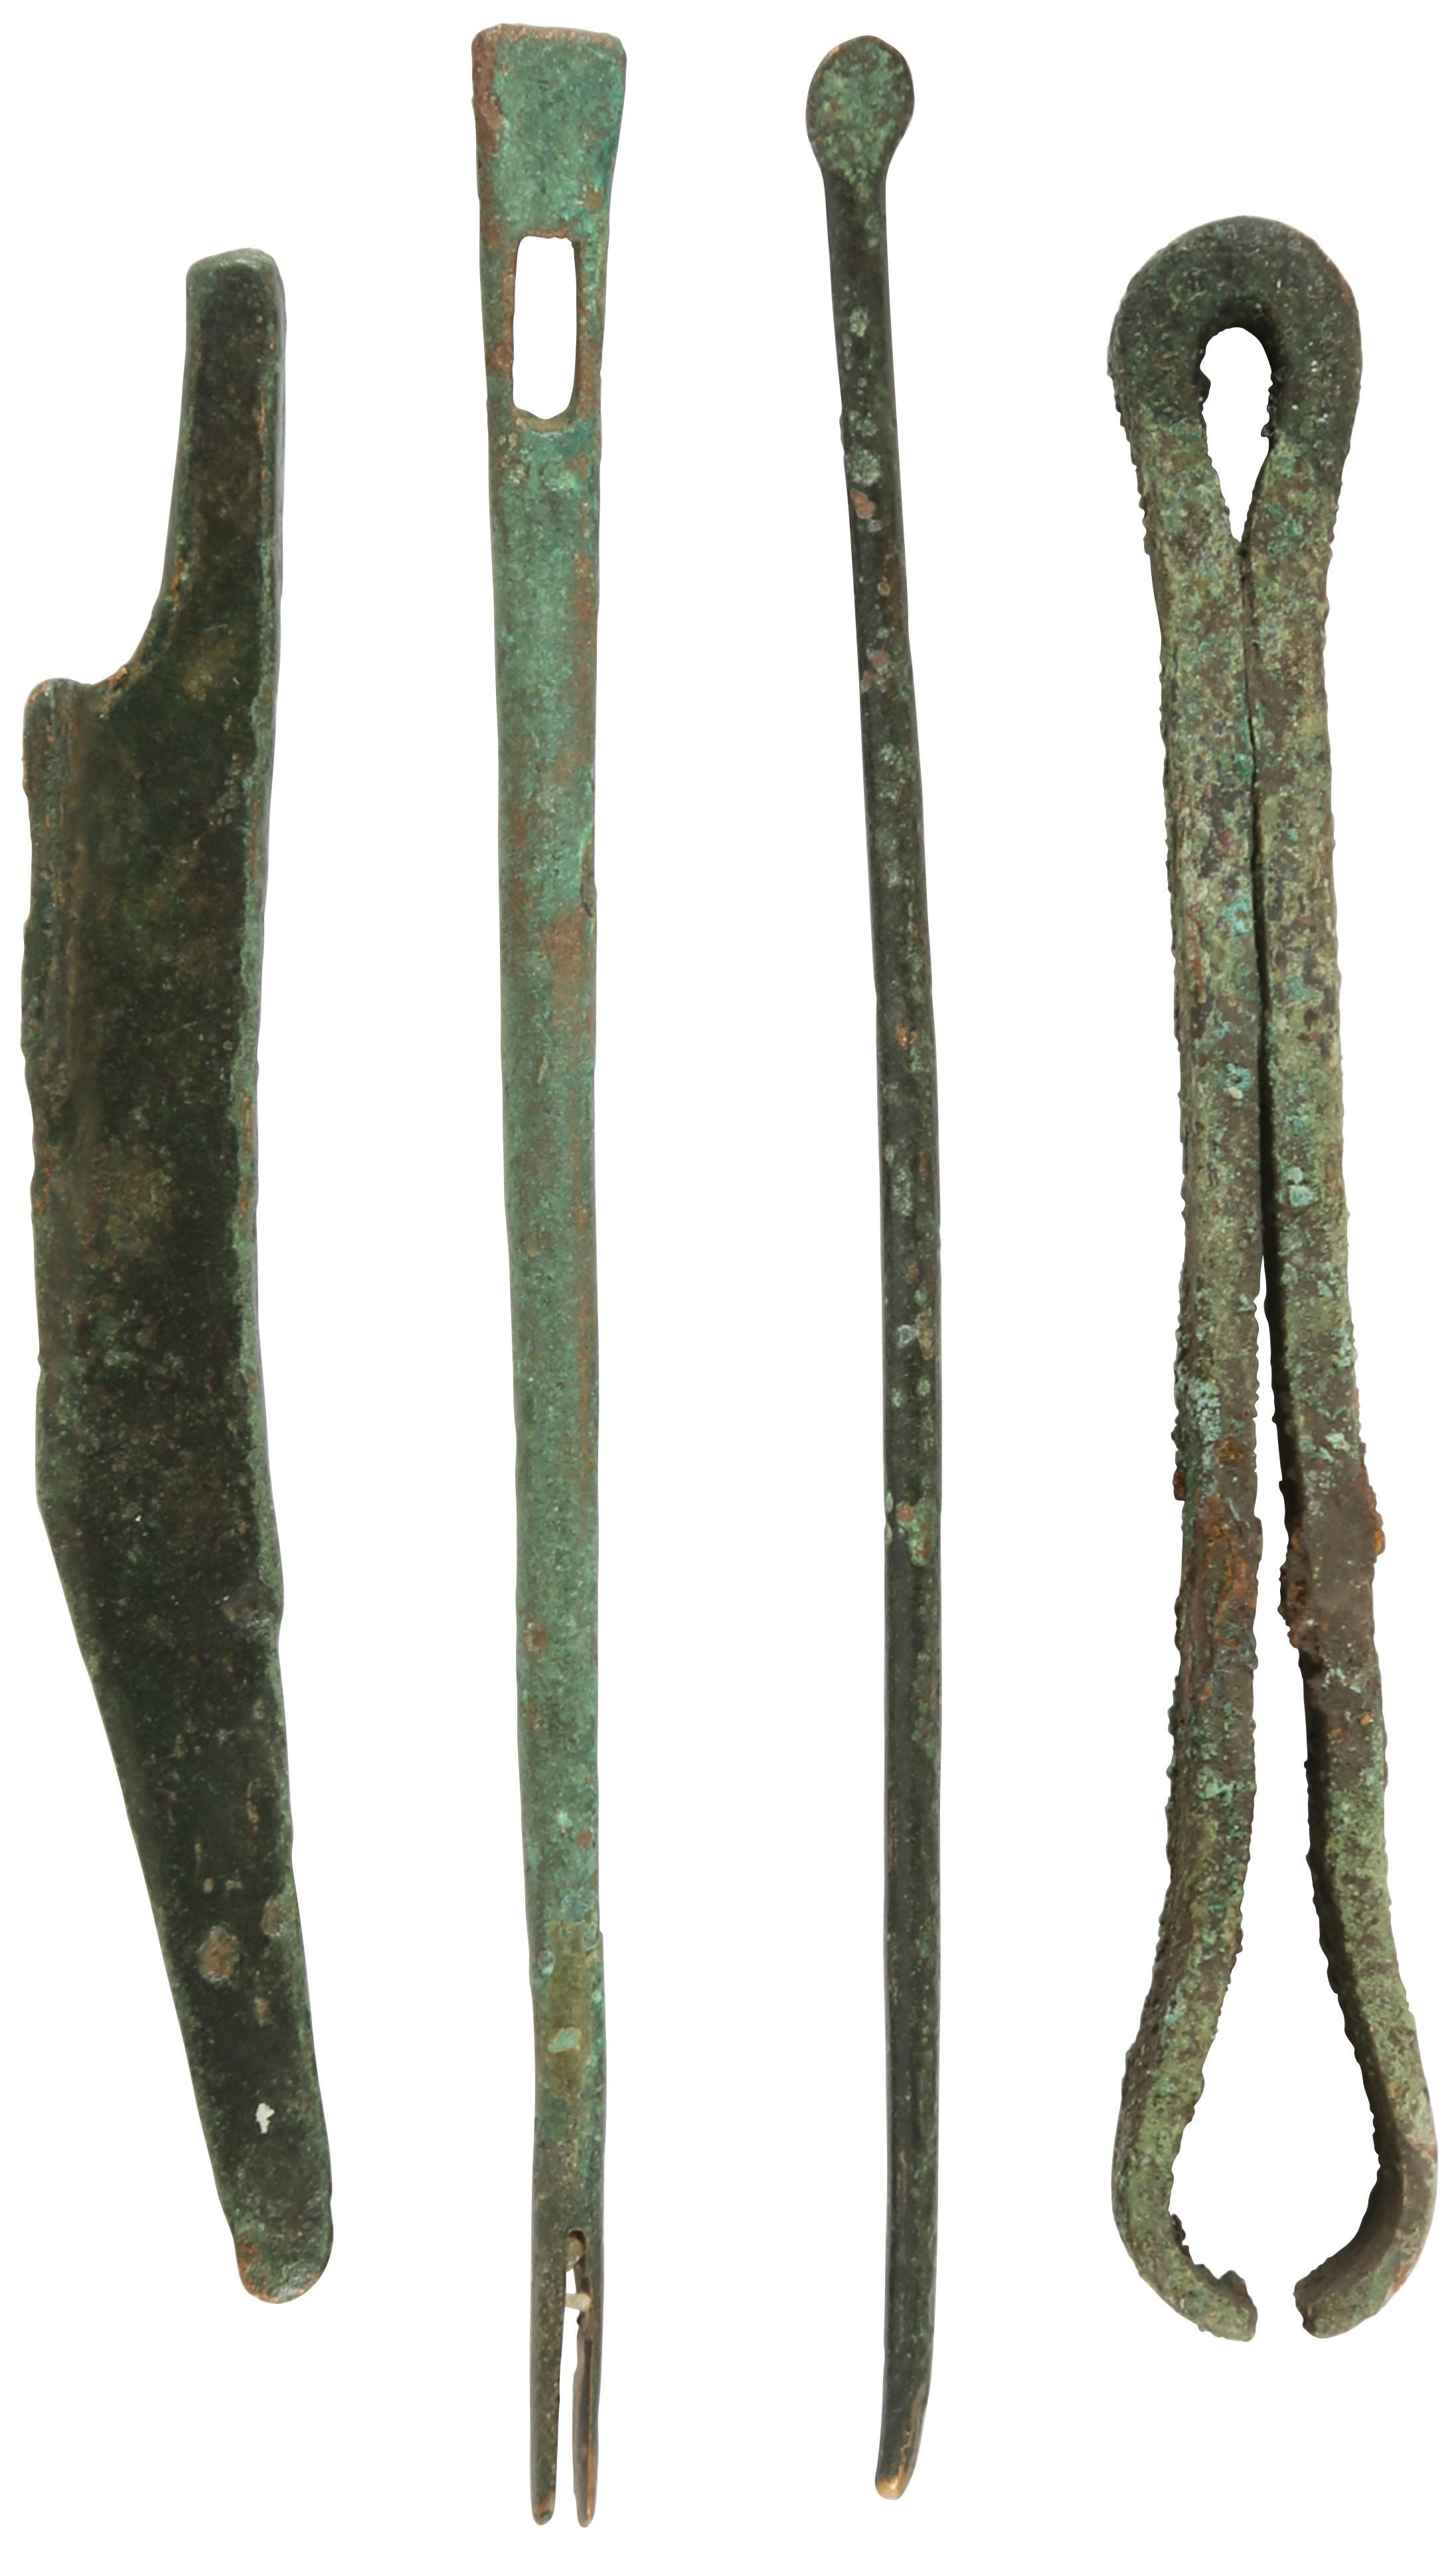 Roman Medical Instruments C.100-300 Ad - Product